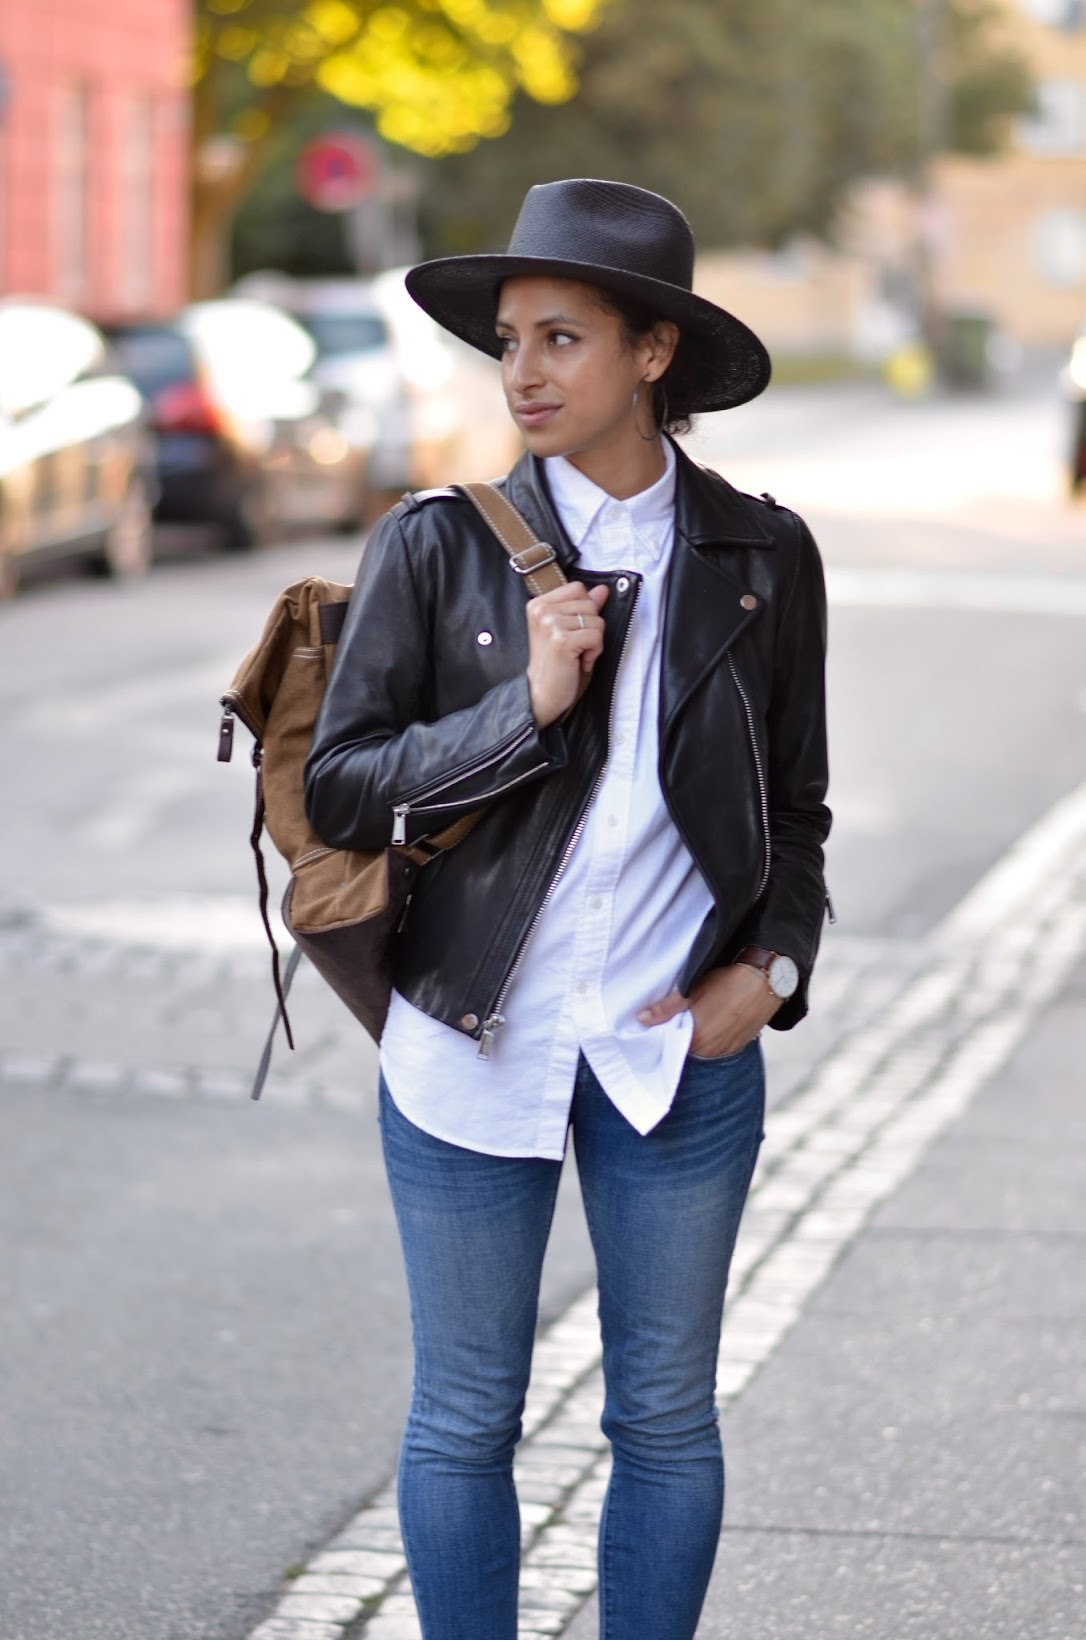 Copenhagen, Torvehallerne, street style, backpack chic, travel style, BCBG Gen leather moto jacket, Blank Denim, Birkenstocks Madrid